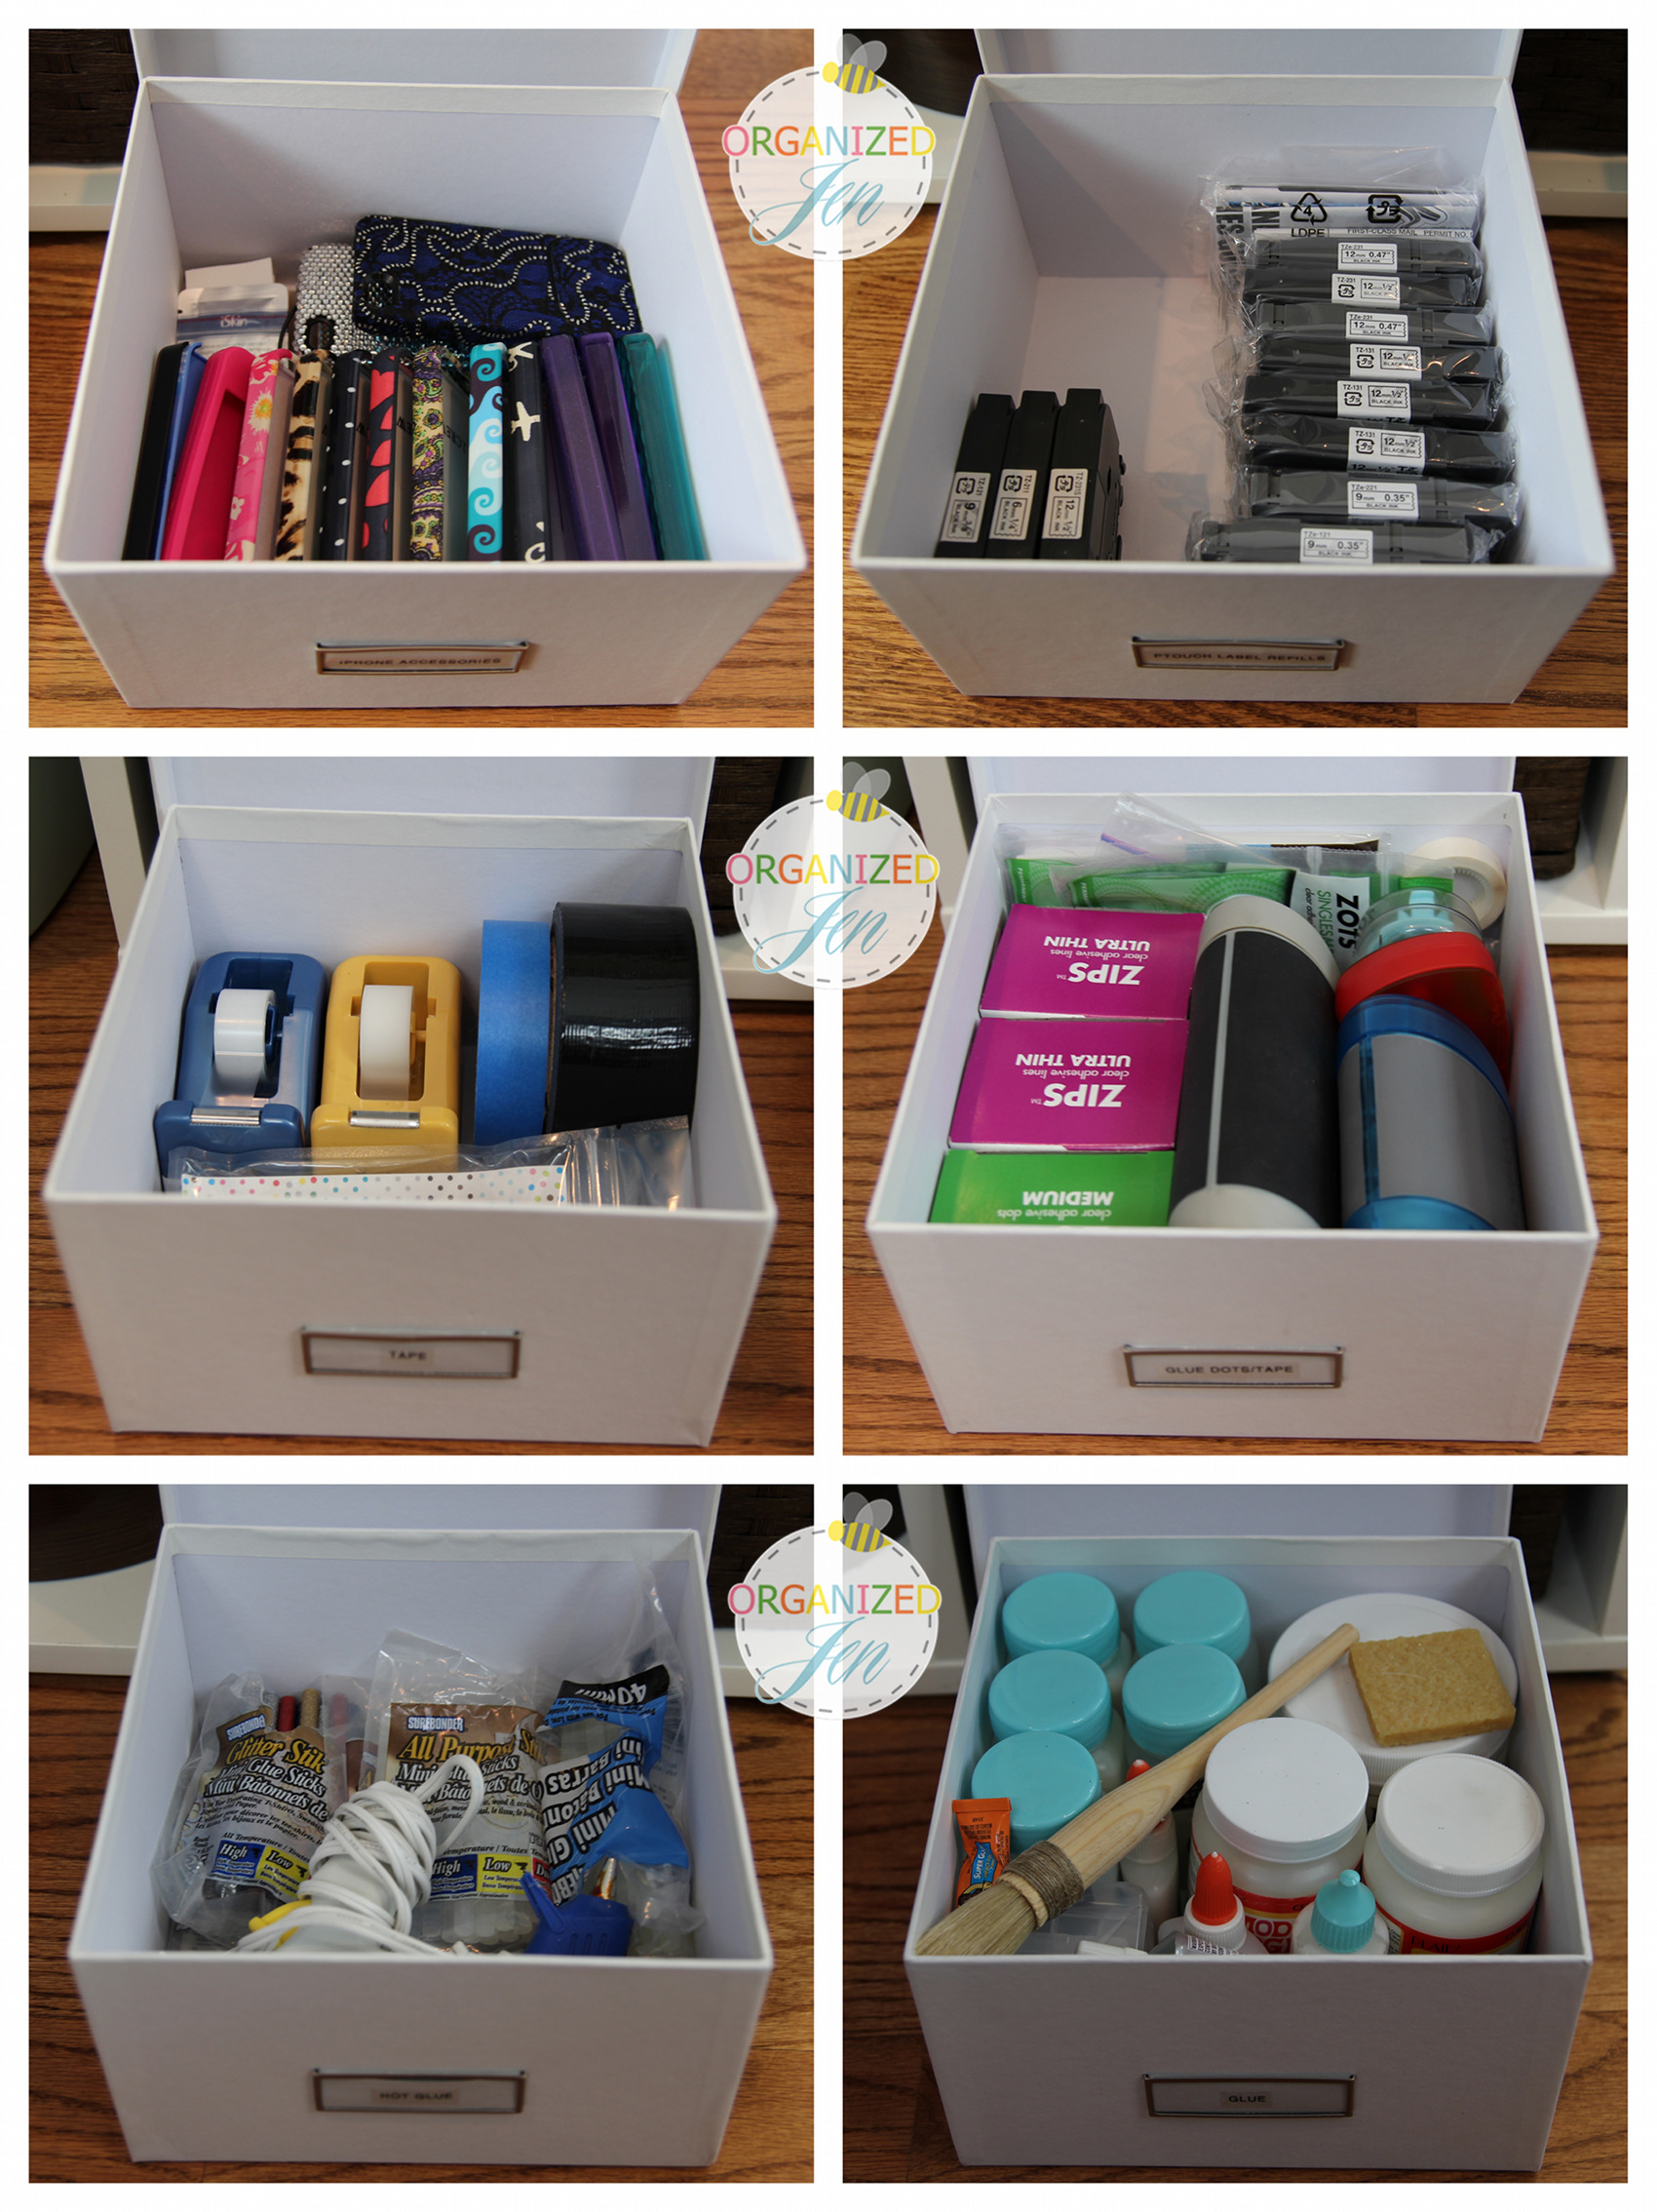 Small Home Office Organization Ideas Part - 38: OJ|OLJ 5:17:2013_5